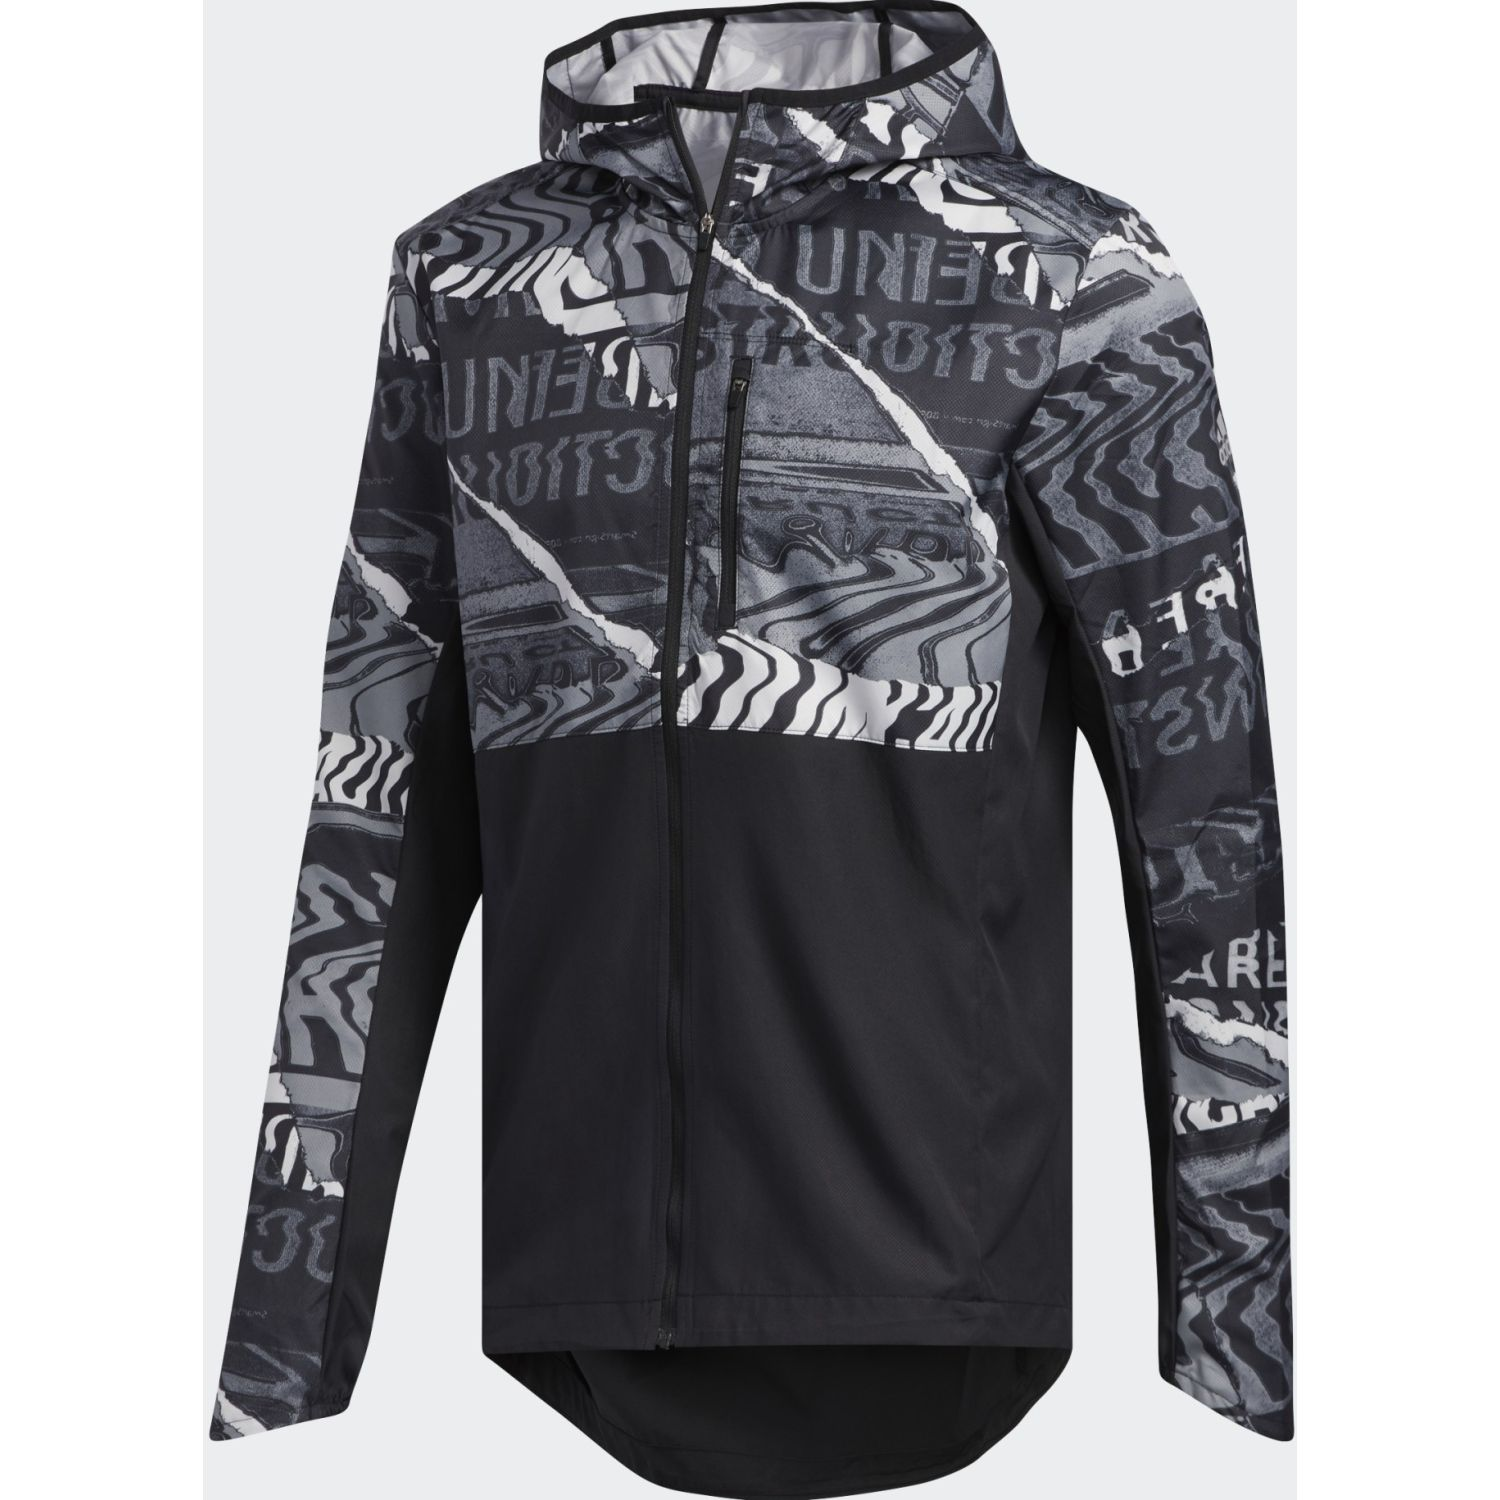 Adidas Own The Run Jkt Gris / negro Casacas de Atletismo